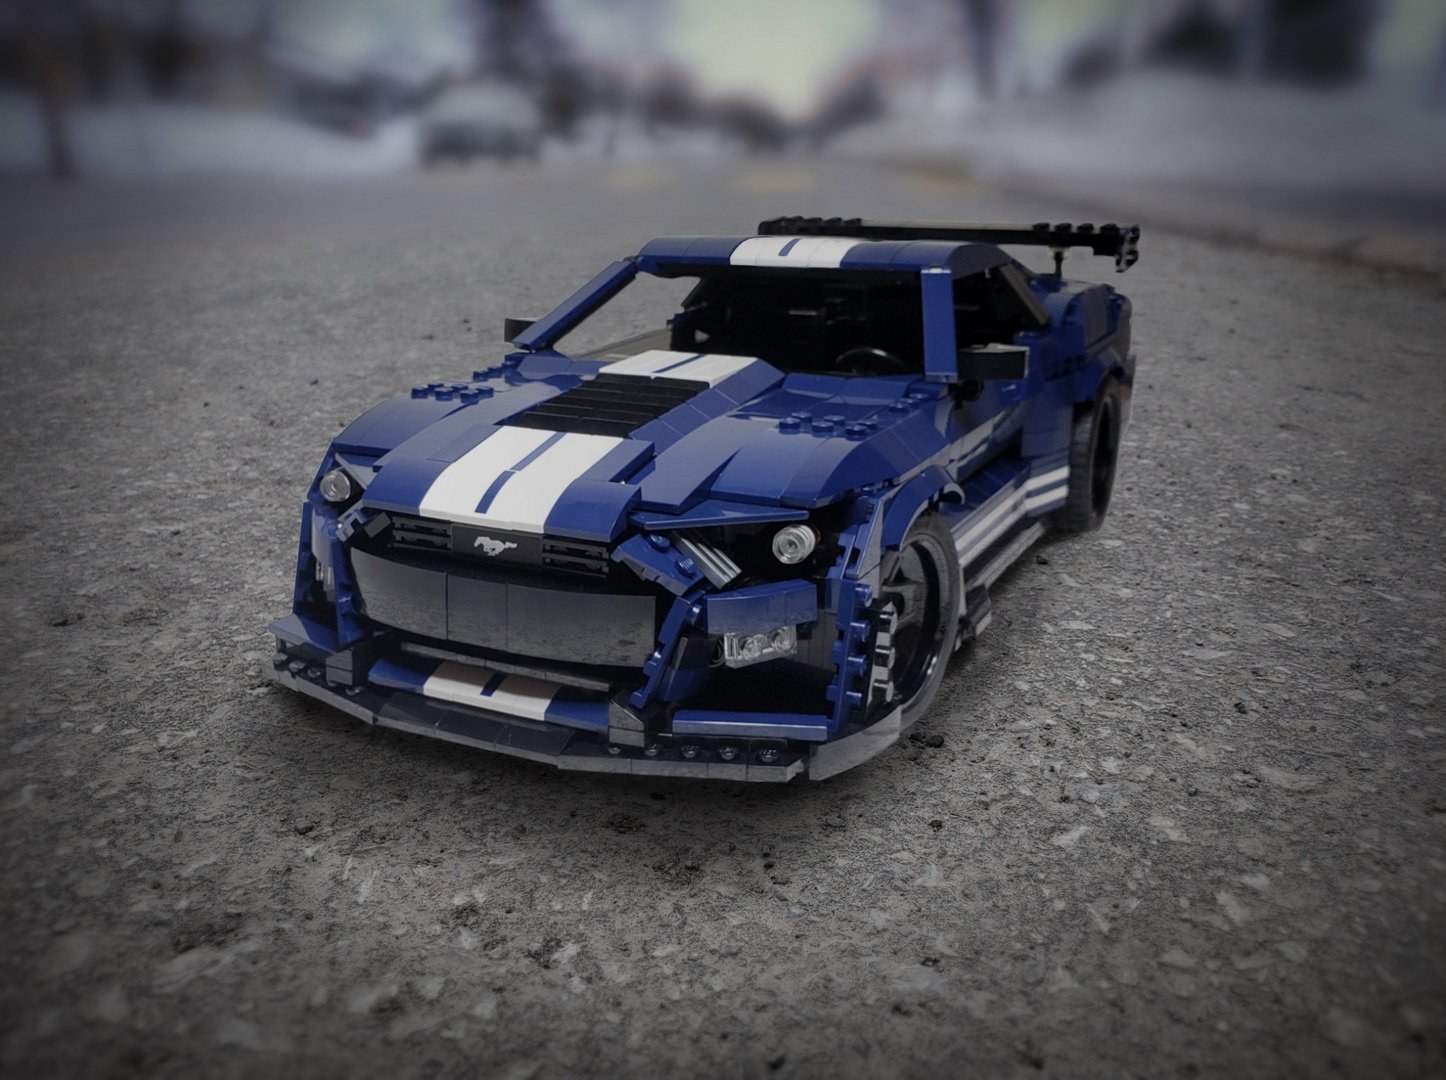 2020-ford-mustang-shelby-gt500-lego.jpeg